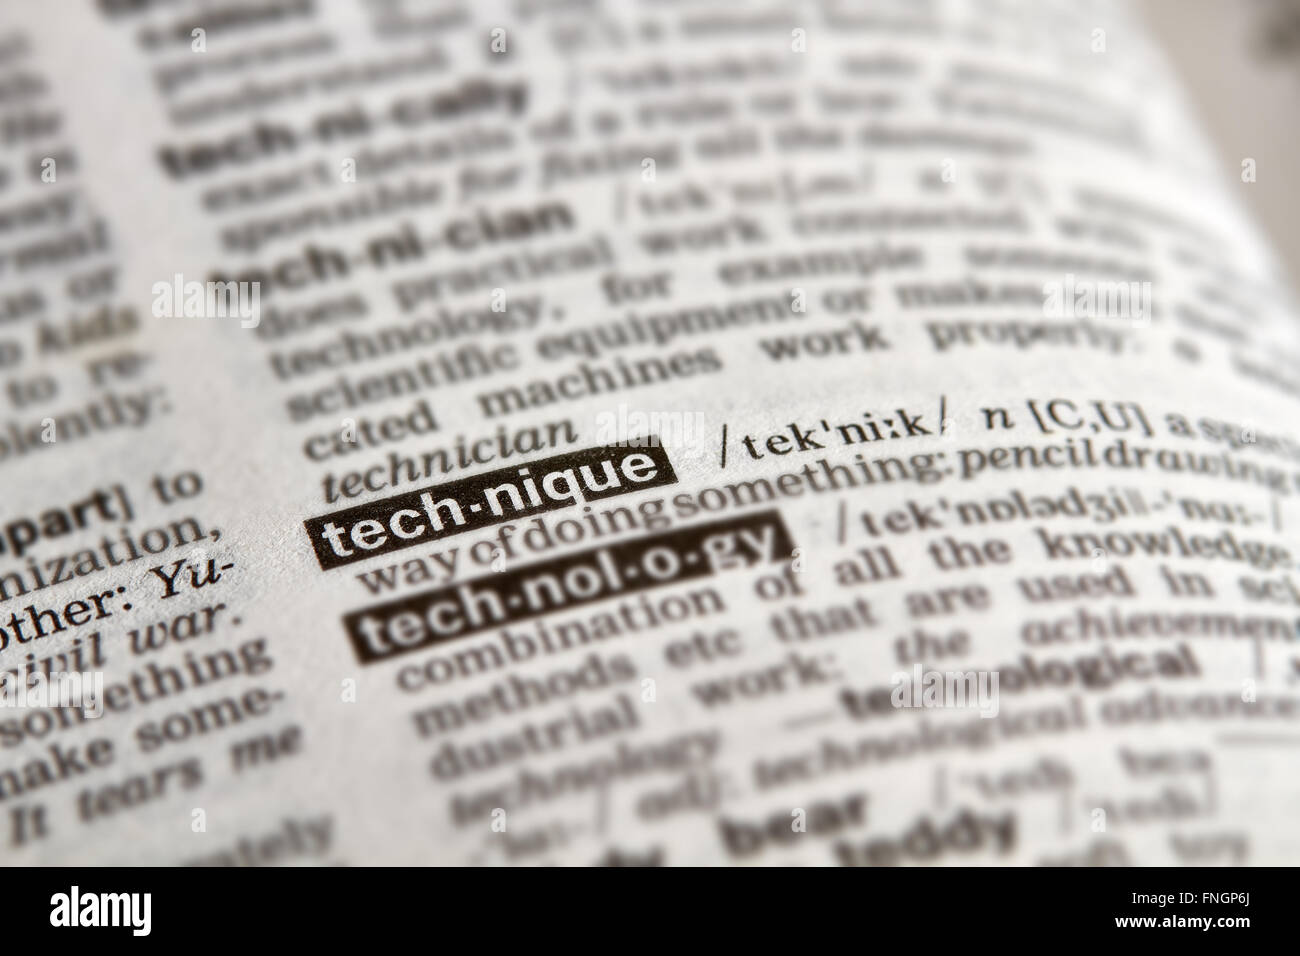 Technique Word Definition Text in Dictionary Page - Stock Image